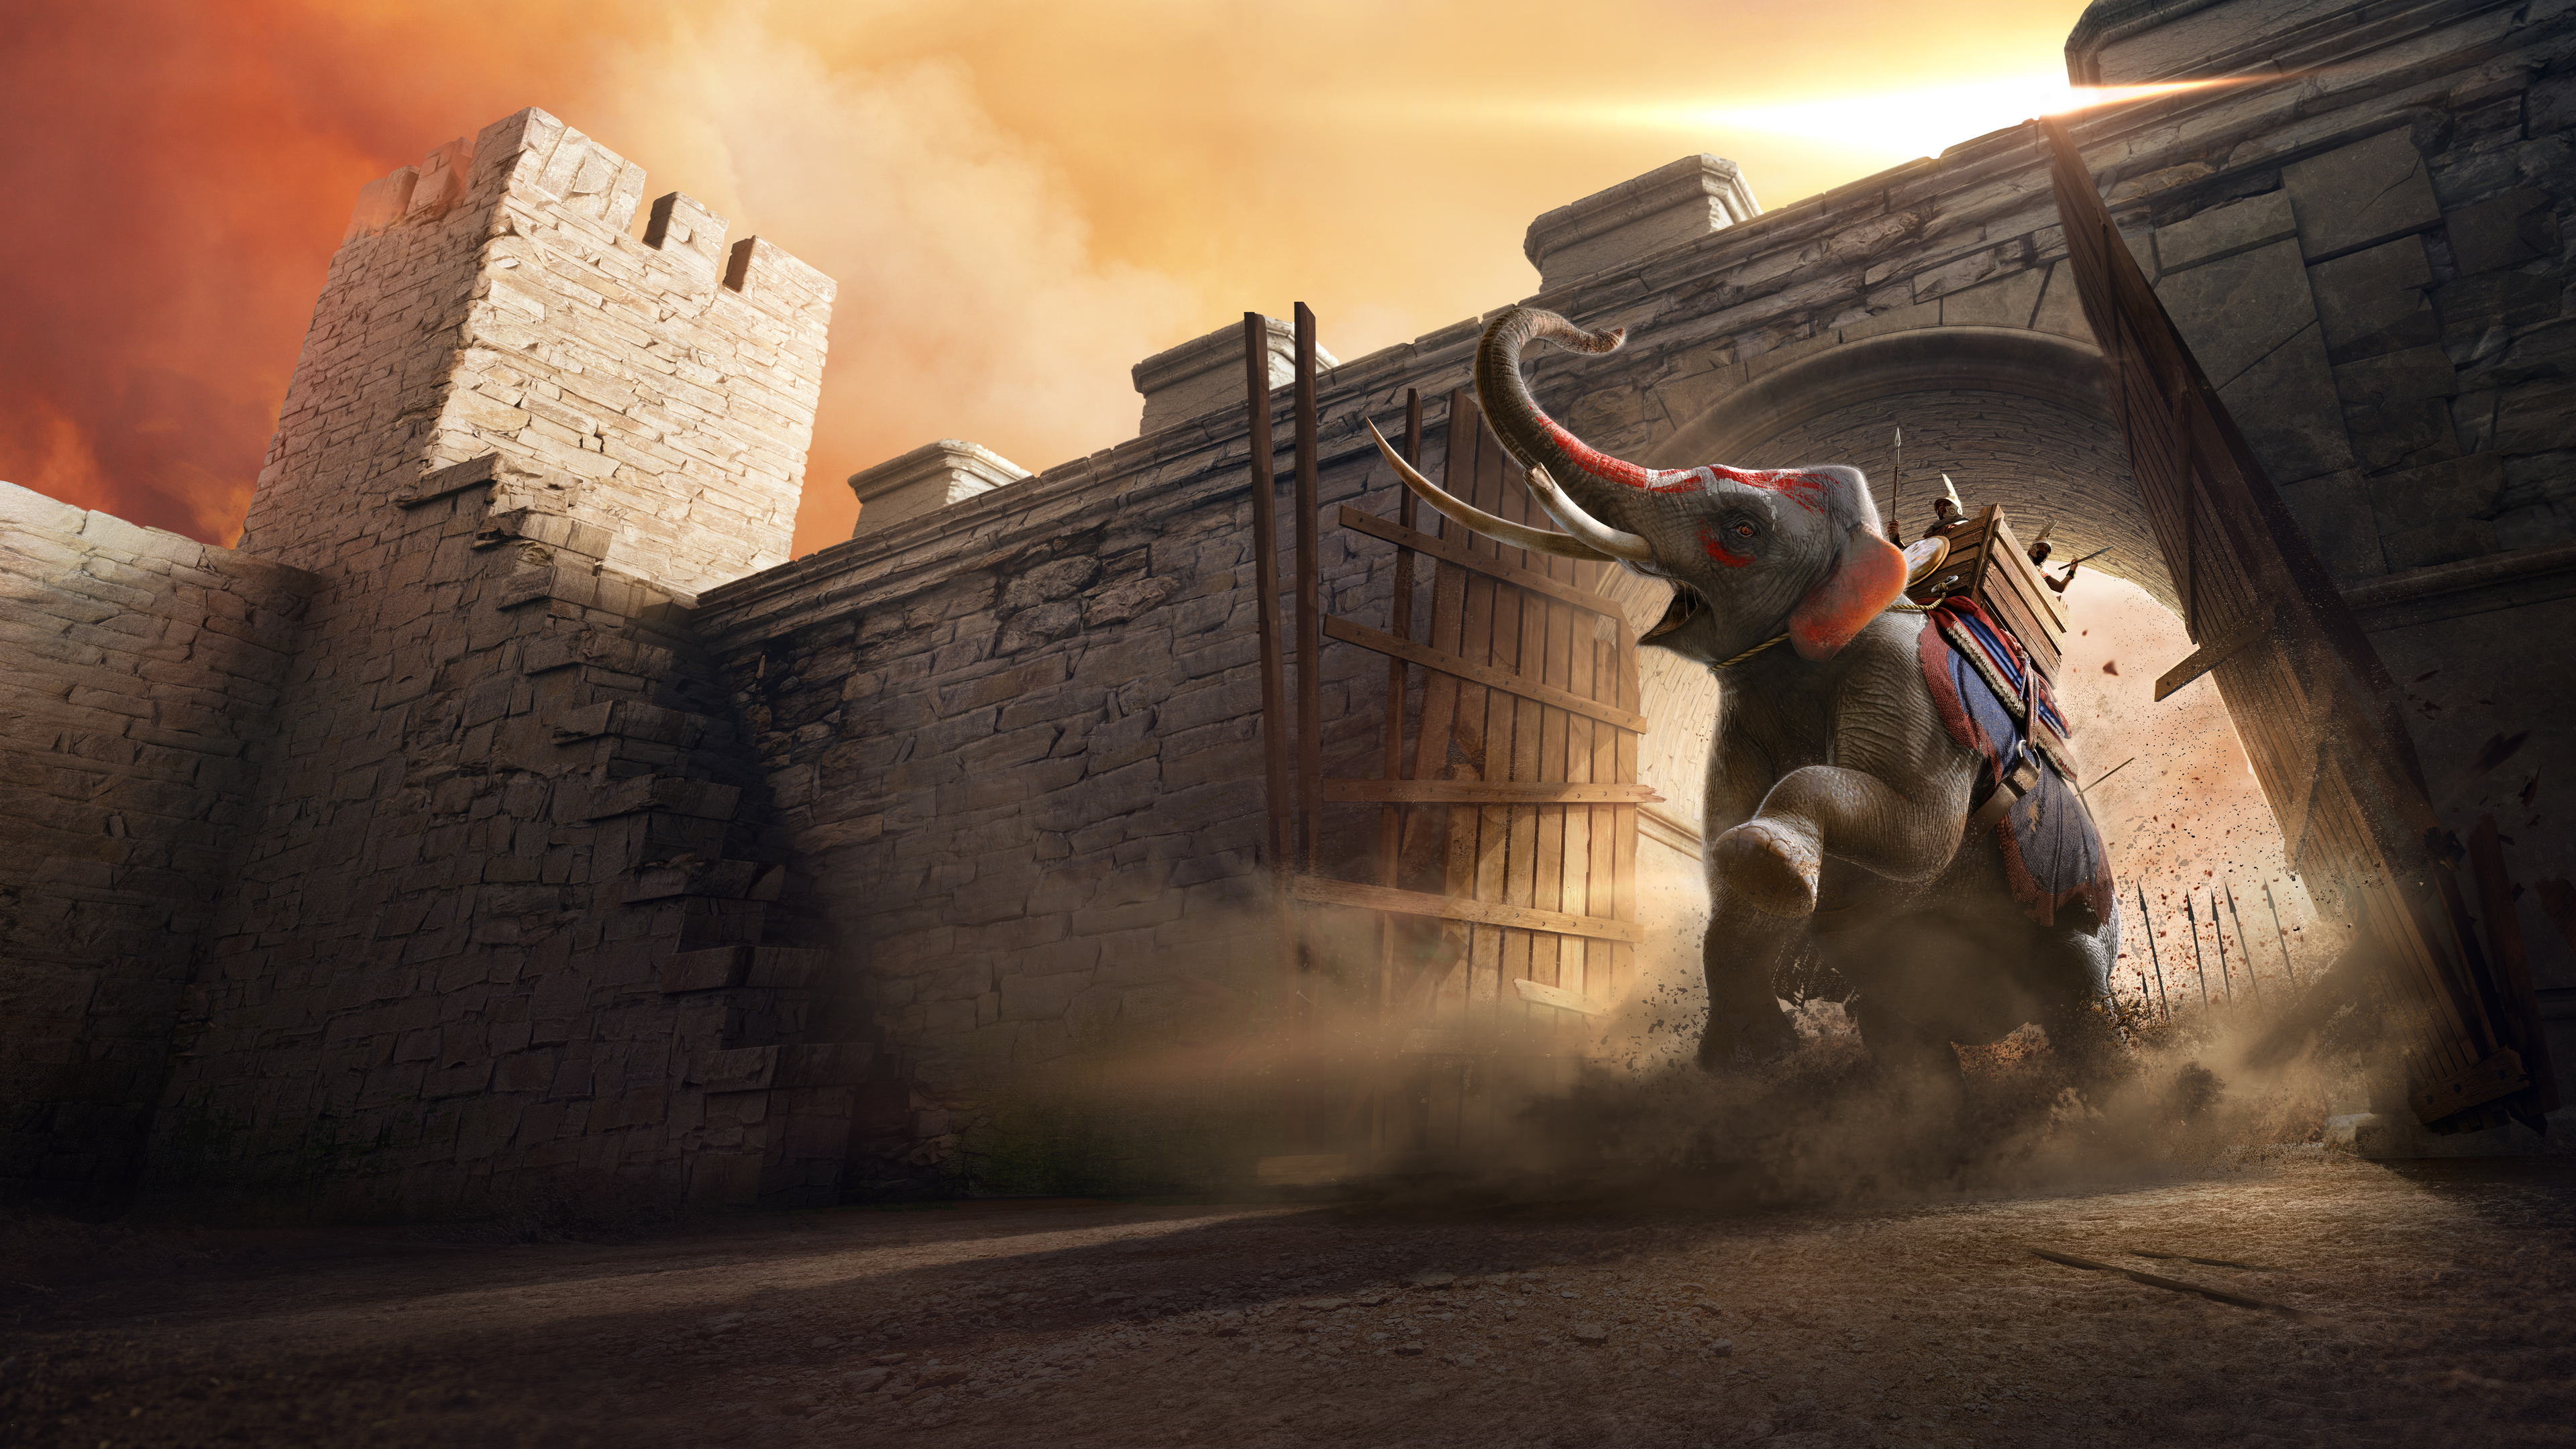 total war arena 5k 1542494931 - Total War Arena 5k - total war arena wallpapers, hd-wallpapers, games wallpapers, elephant wallpapers, 5k wallpapers, 4k-wallpapers, 2017 games wallpapers